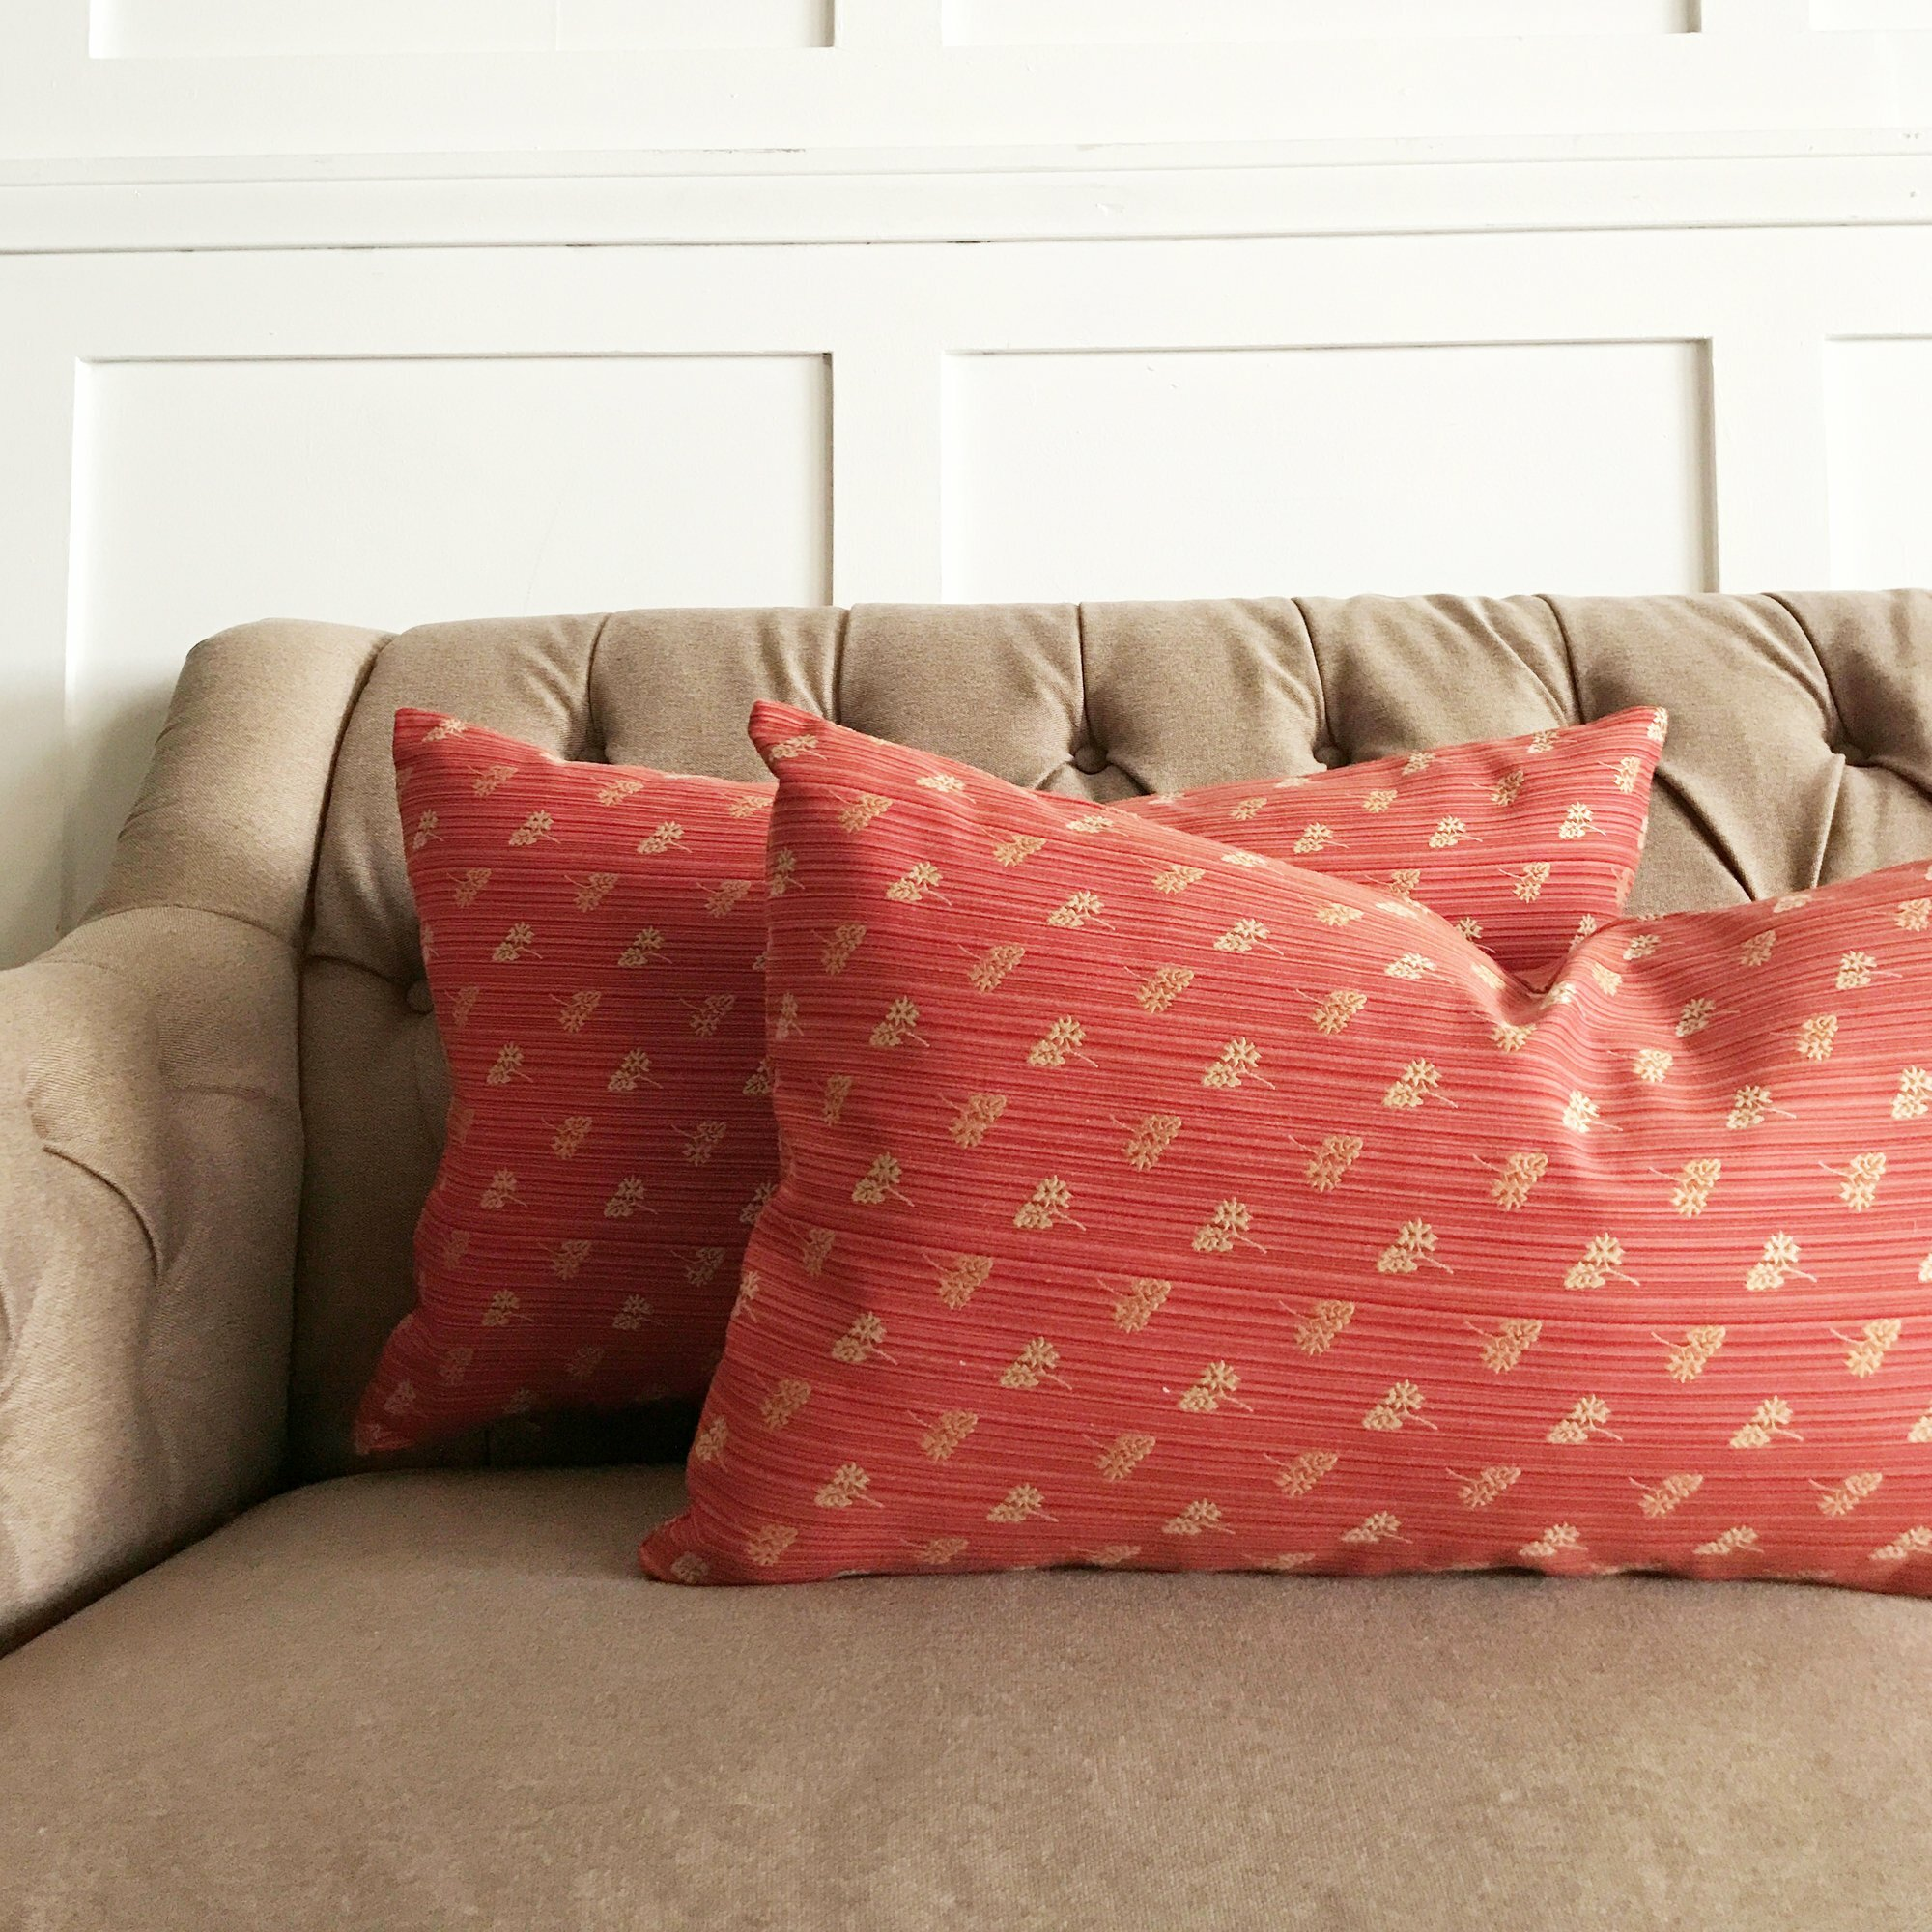 august grove heineman berry striped leaf embroidered luxury Upscale Decorative Pillows